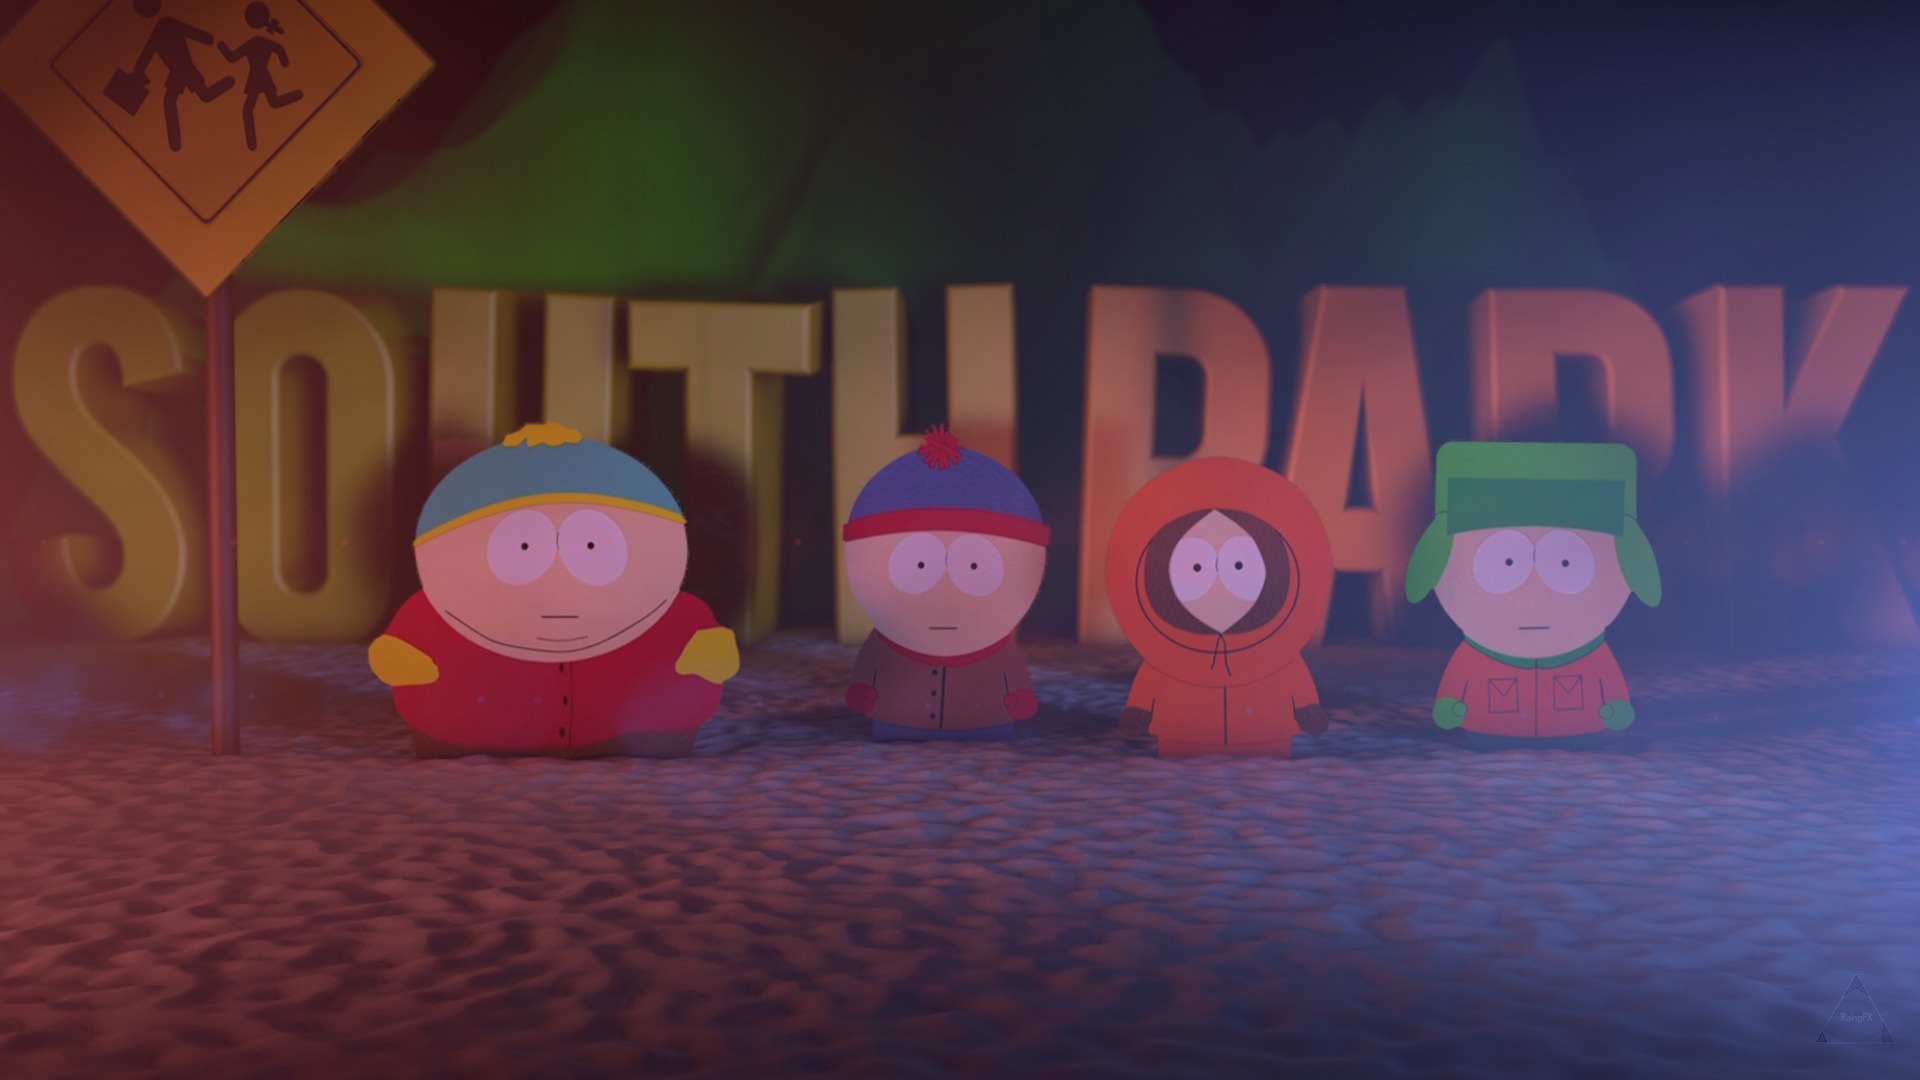 south park wallpaper 1